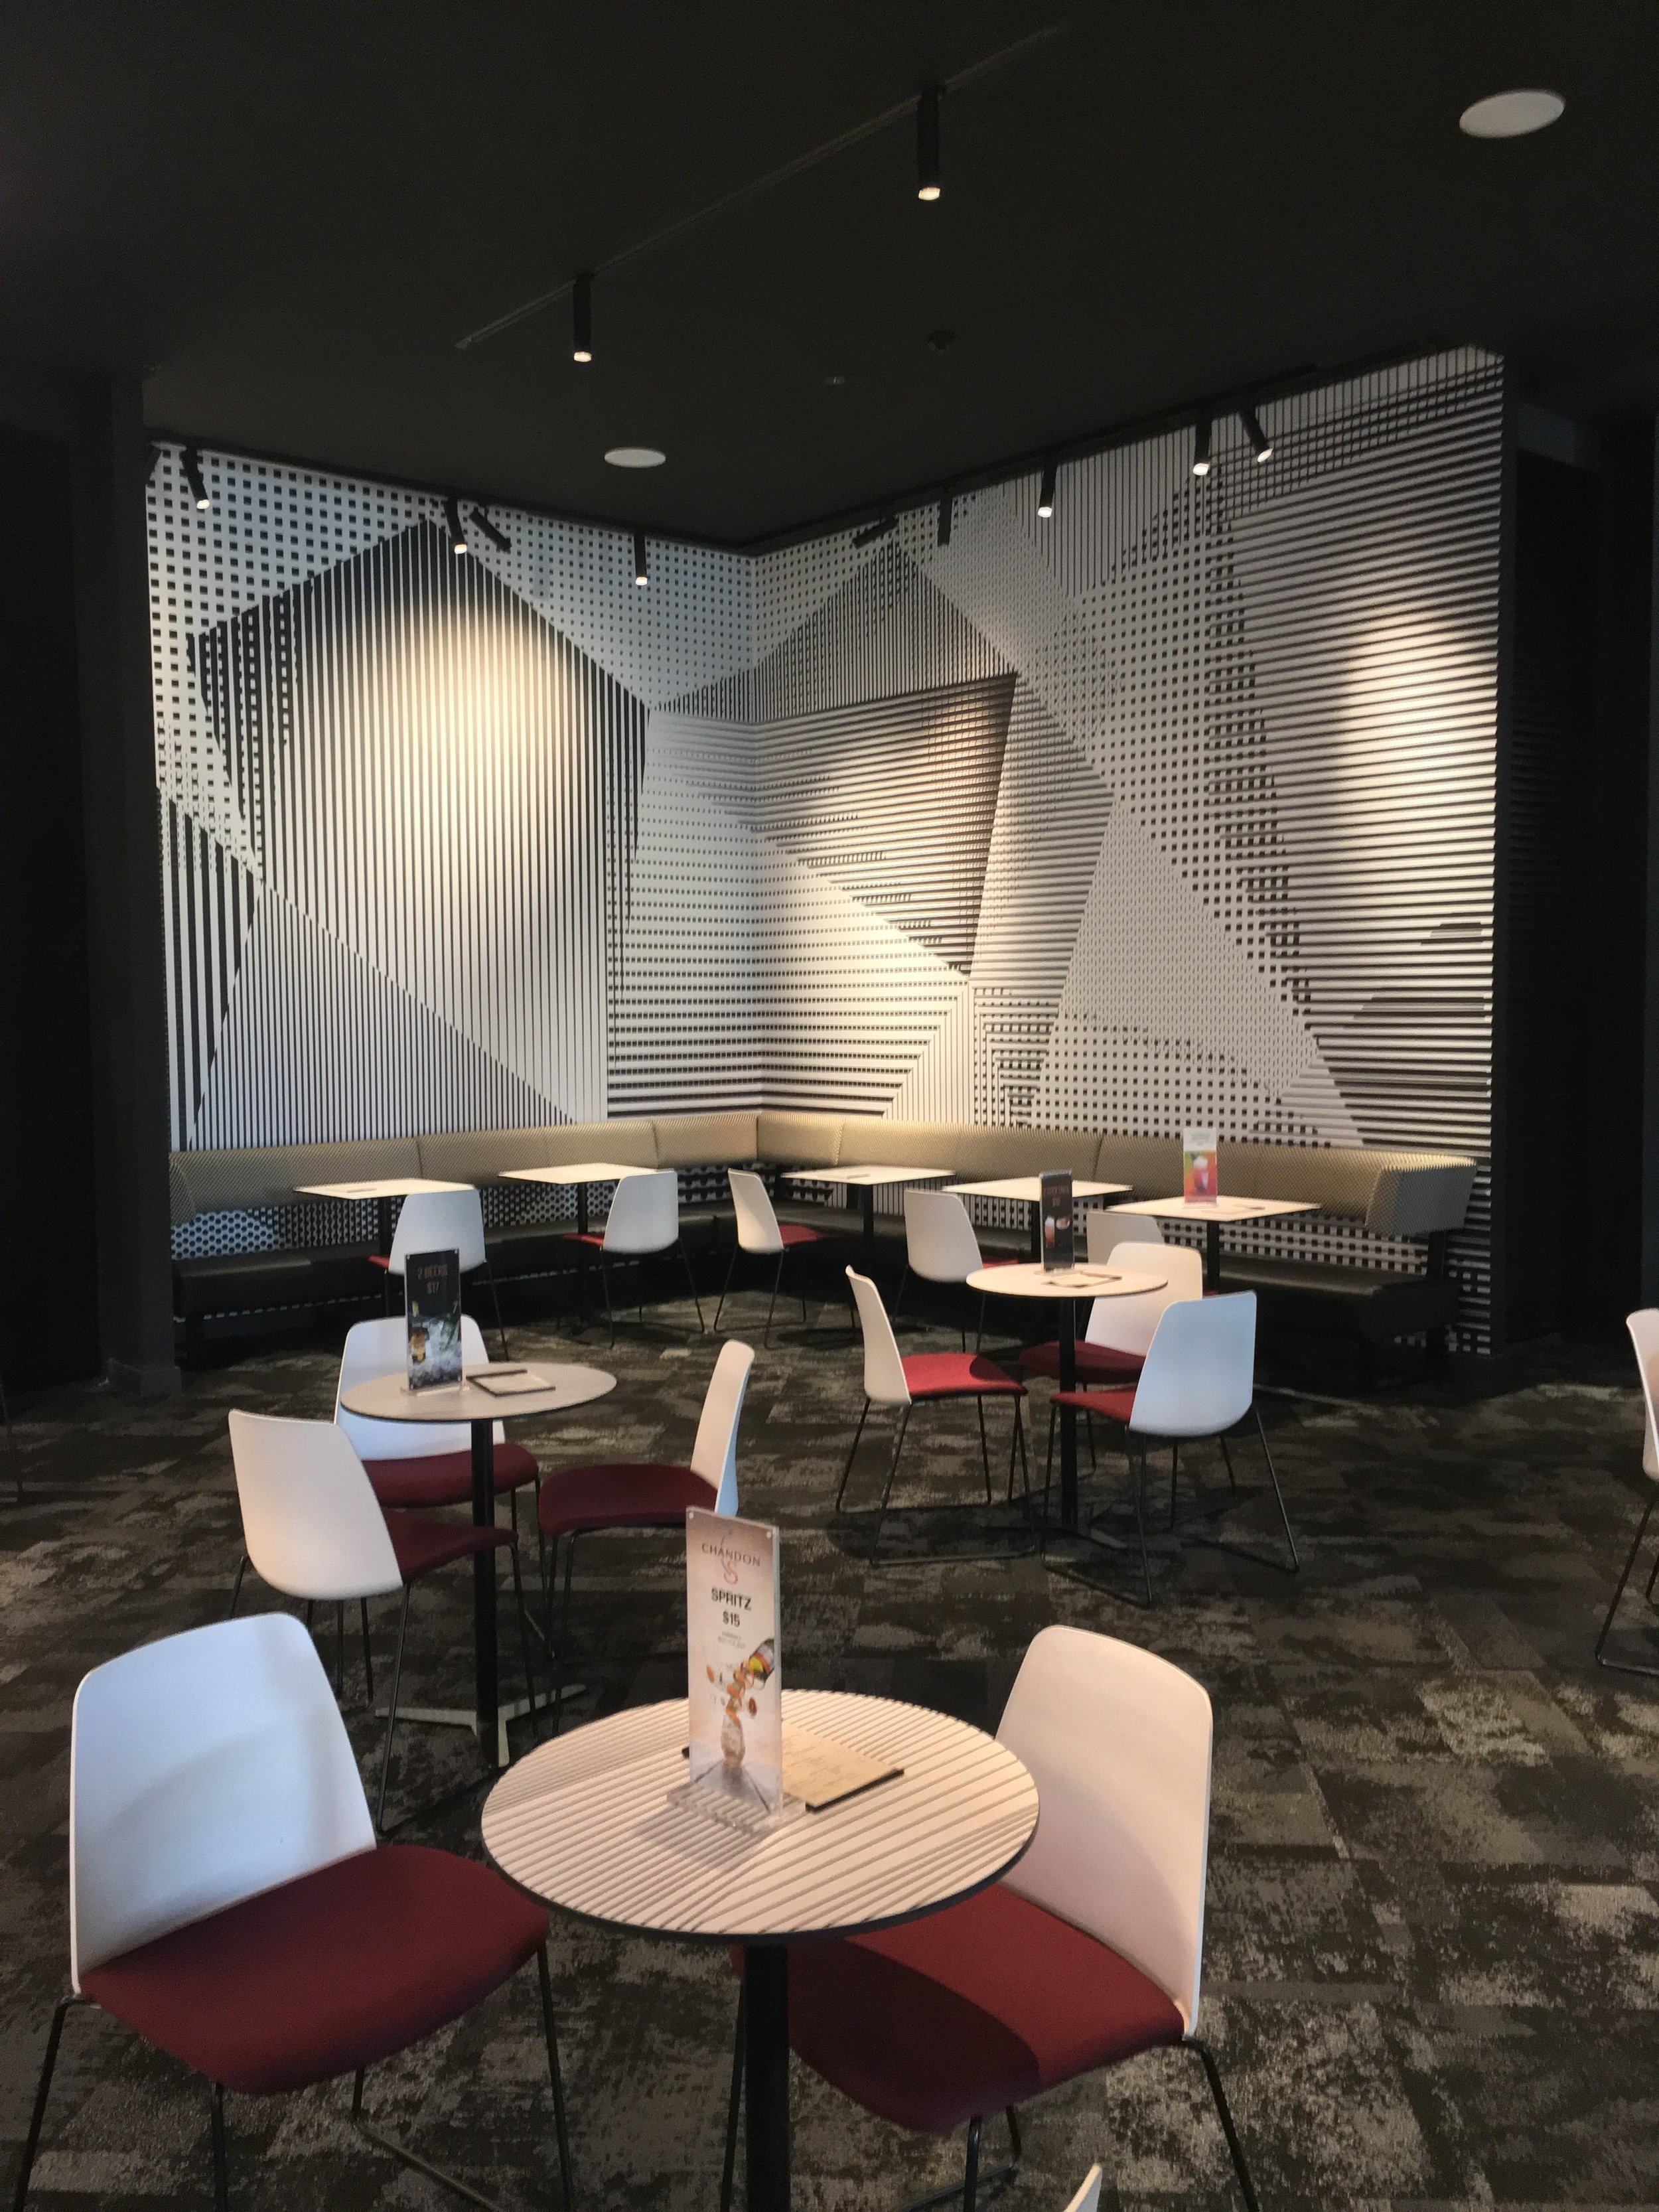 Eating / Pause Area   Digitally printed wall graphics